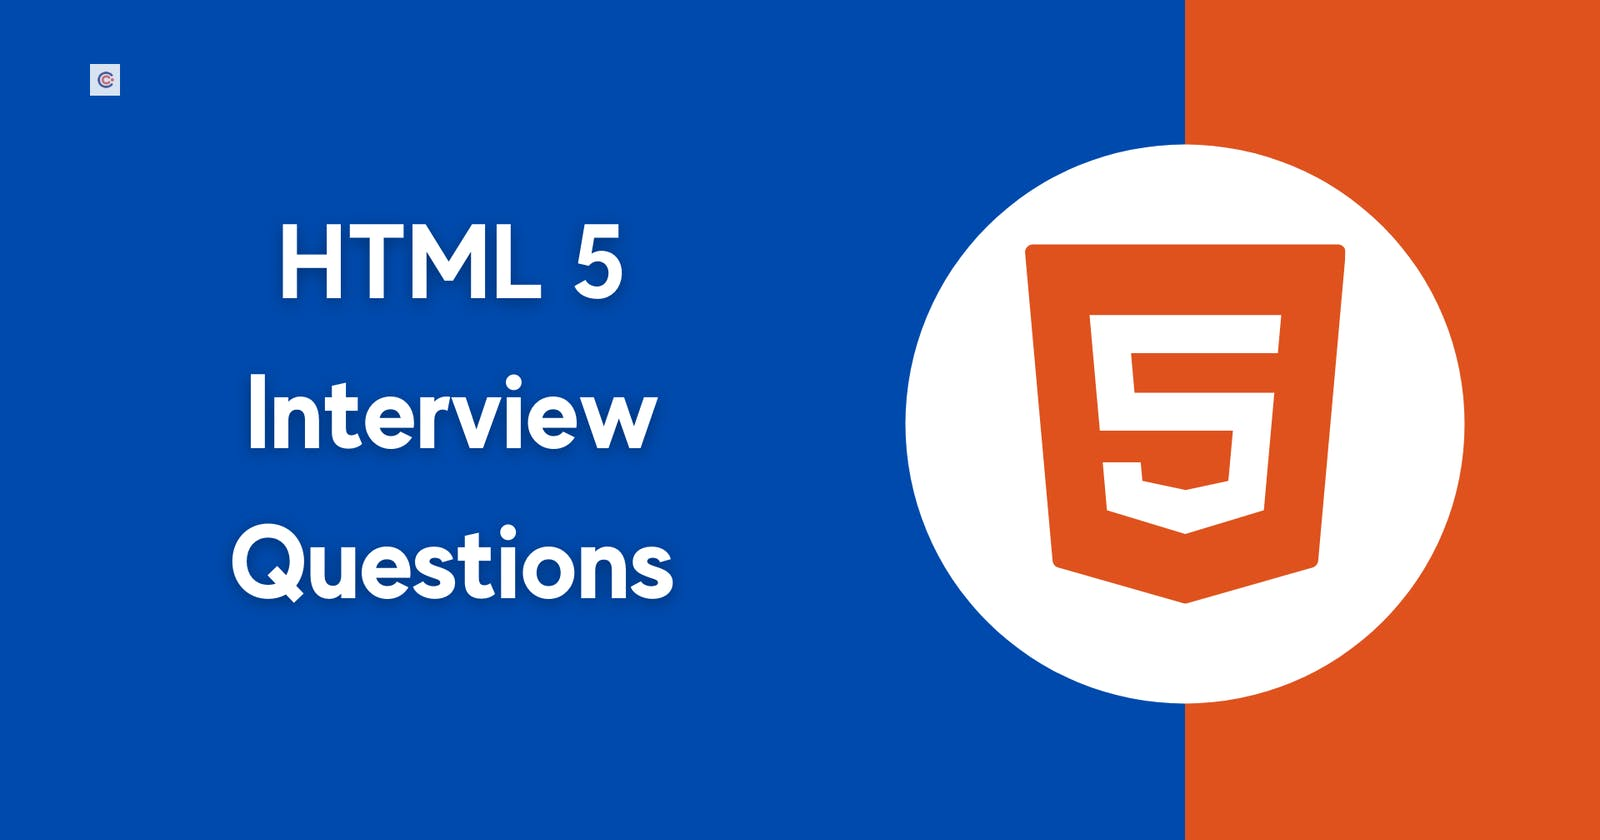 HTML 5 Interview Questions: Top 50 Questions to Help You Excel